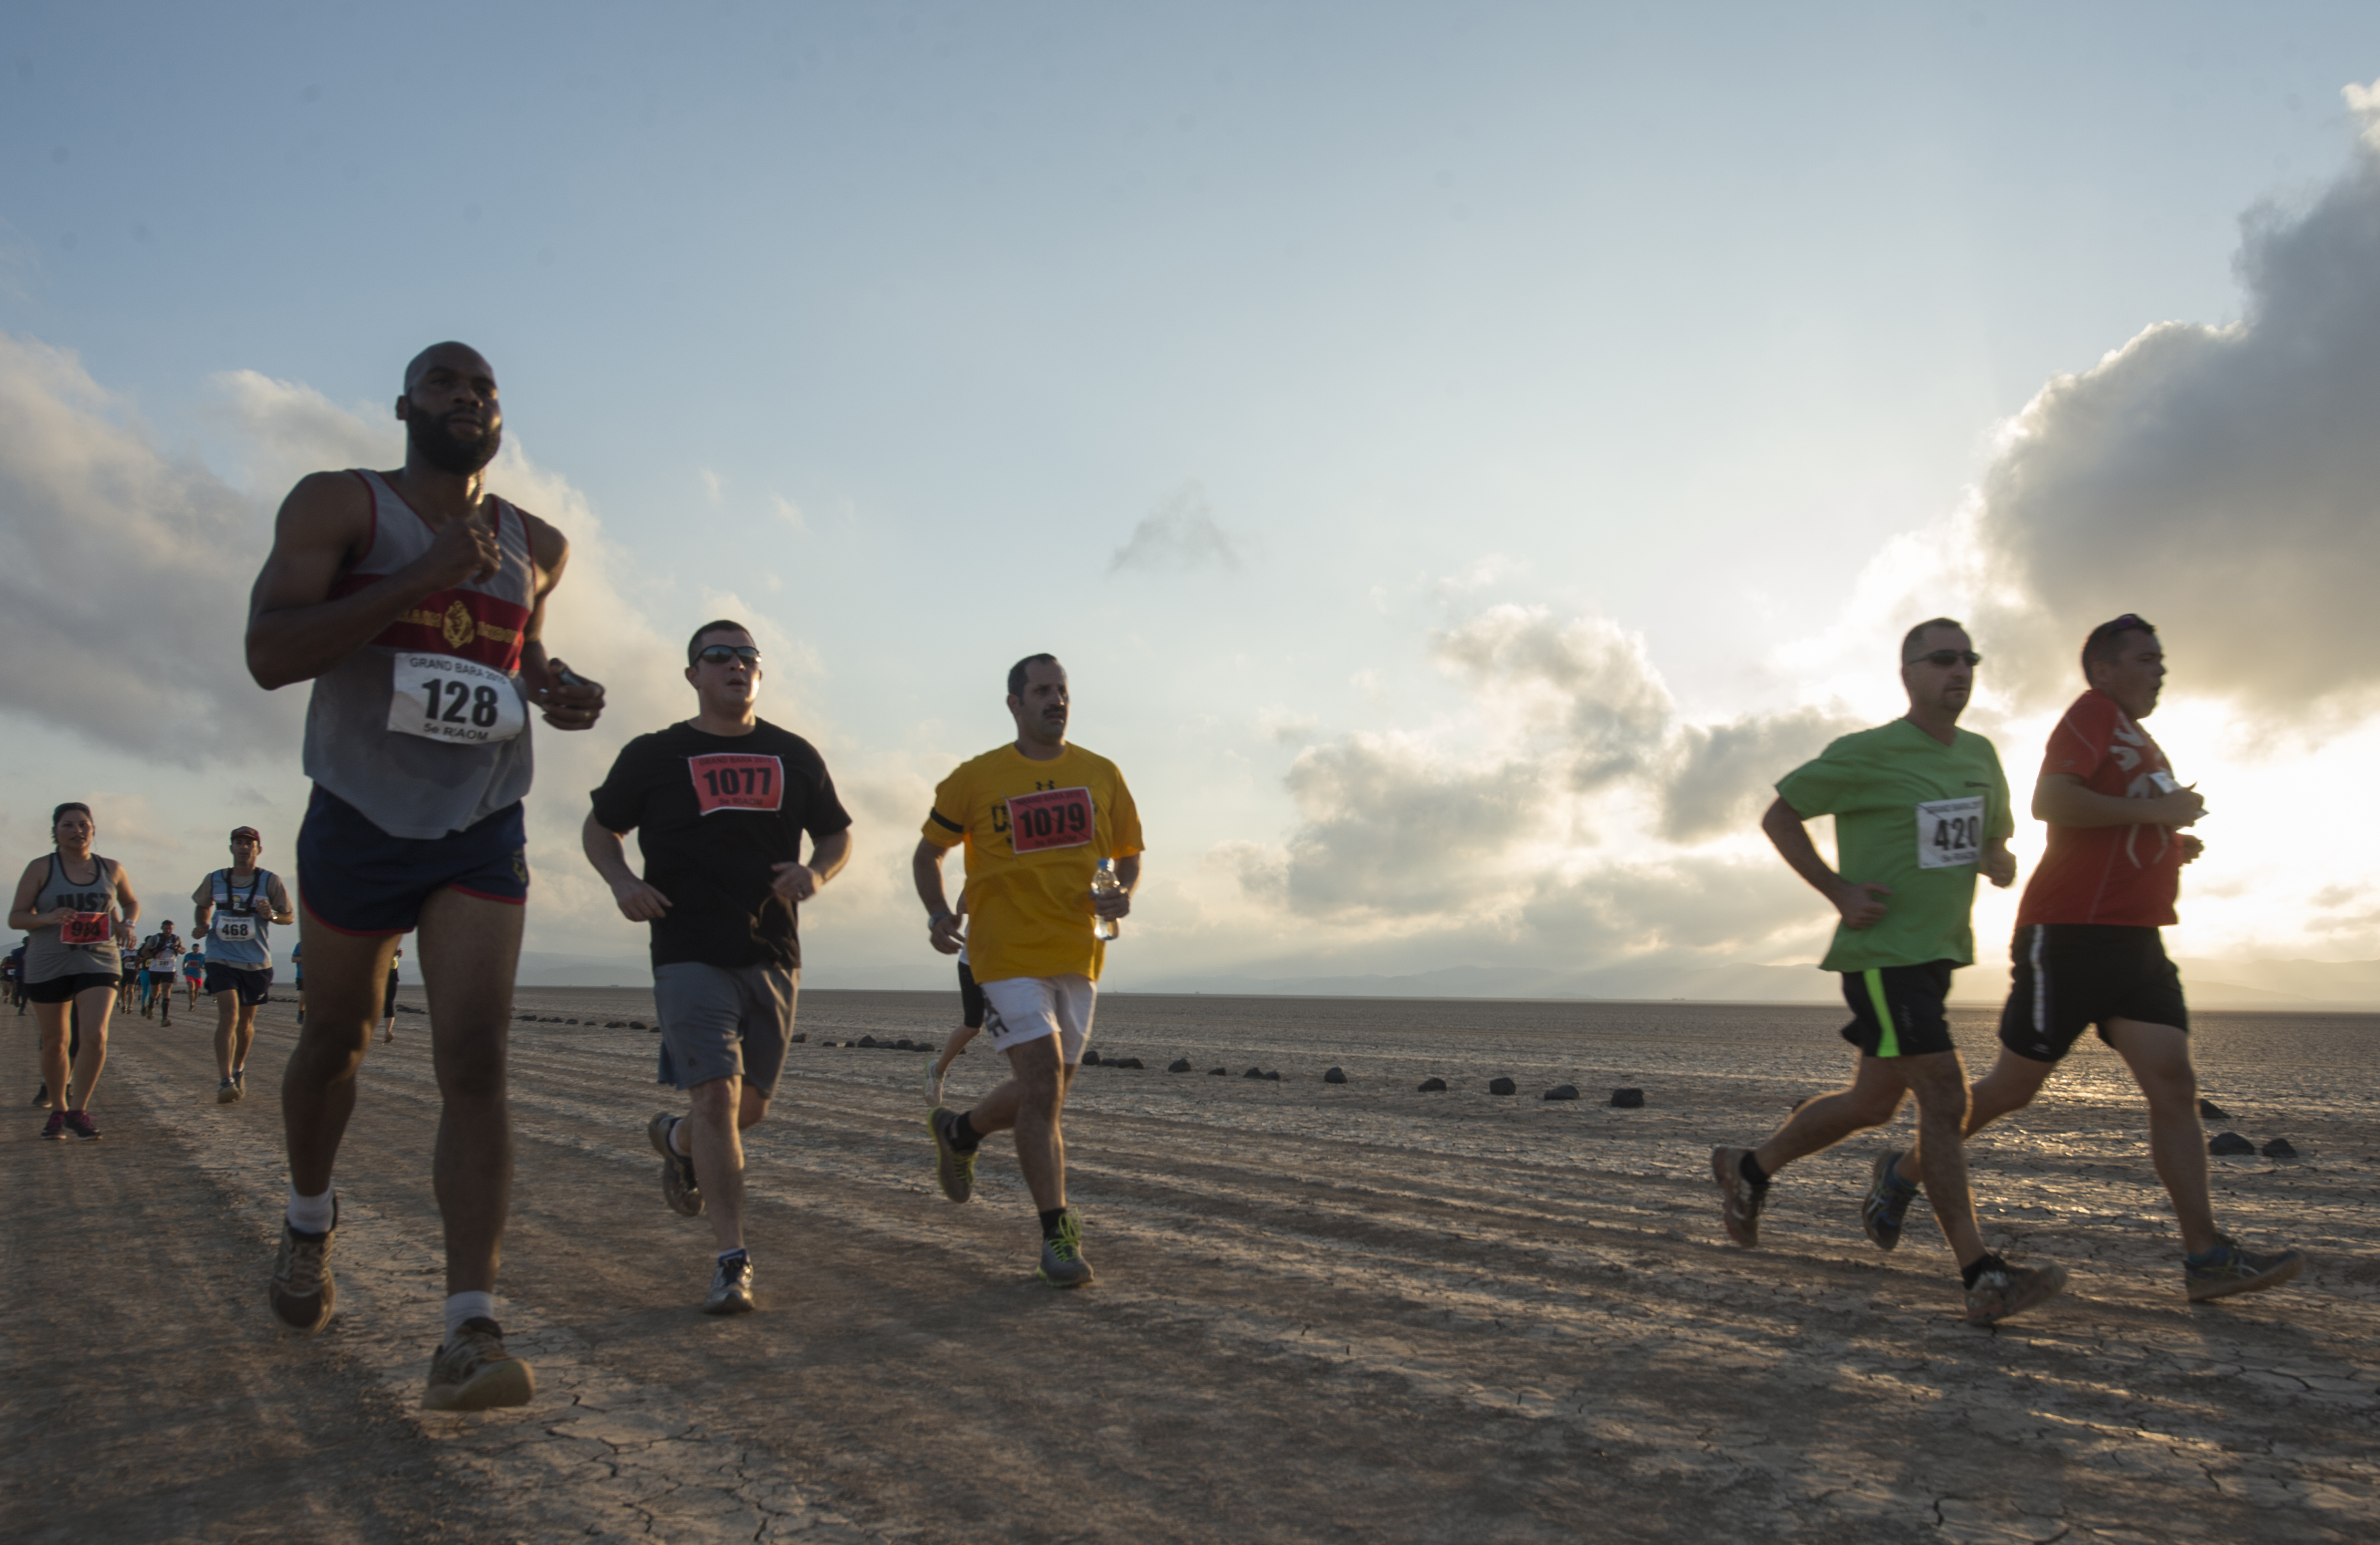 Runners make their way across the Grand Bara Desert during the Annual Grand Bara 15K race Dec. 17, 2015, in Djibouti. Most races start with a gunshot, but the Grand Bara traditionally starts with a flyover of French Mirage fighter jets. (U.S. Air Force photo by Senior Airman Peter Thompson)